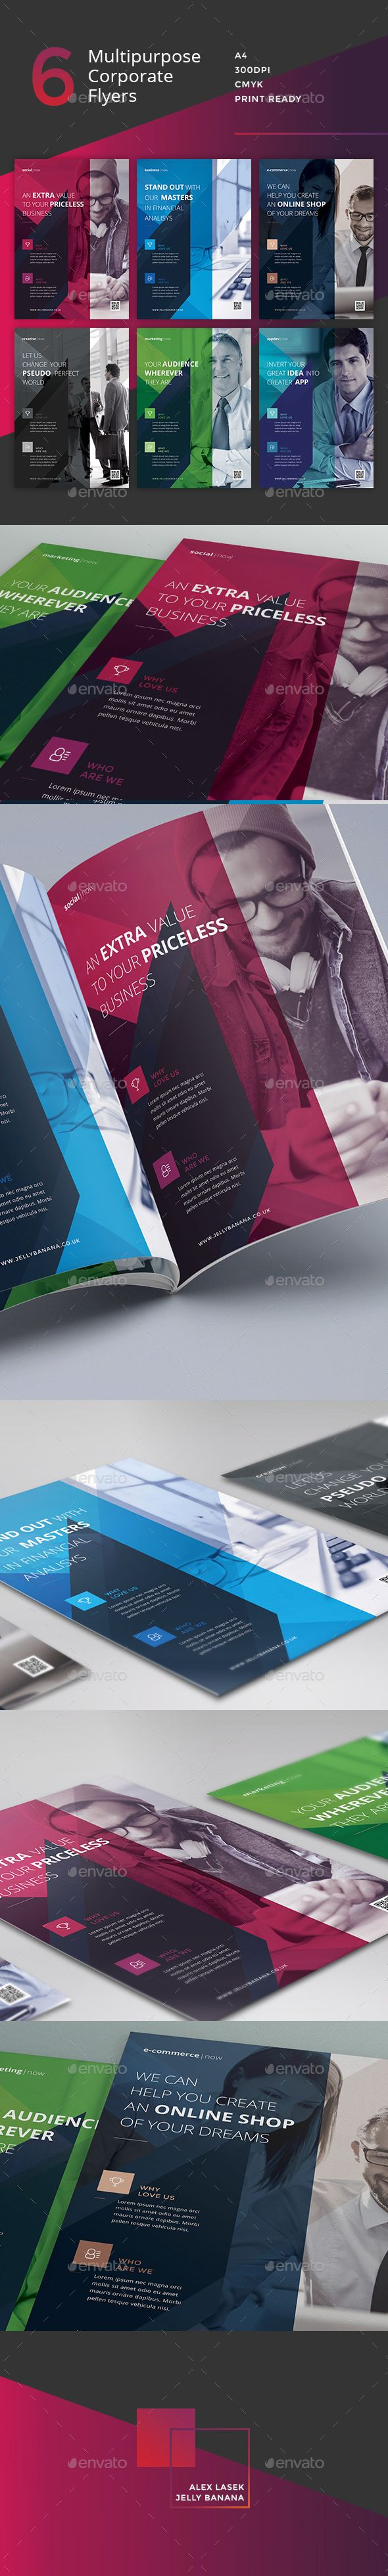 Corporate Flyer - 6 Multipurpose Business Templates vol 4 - Corporate Flyers